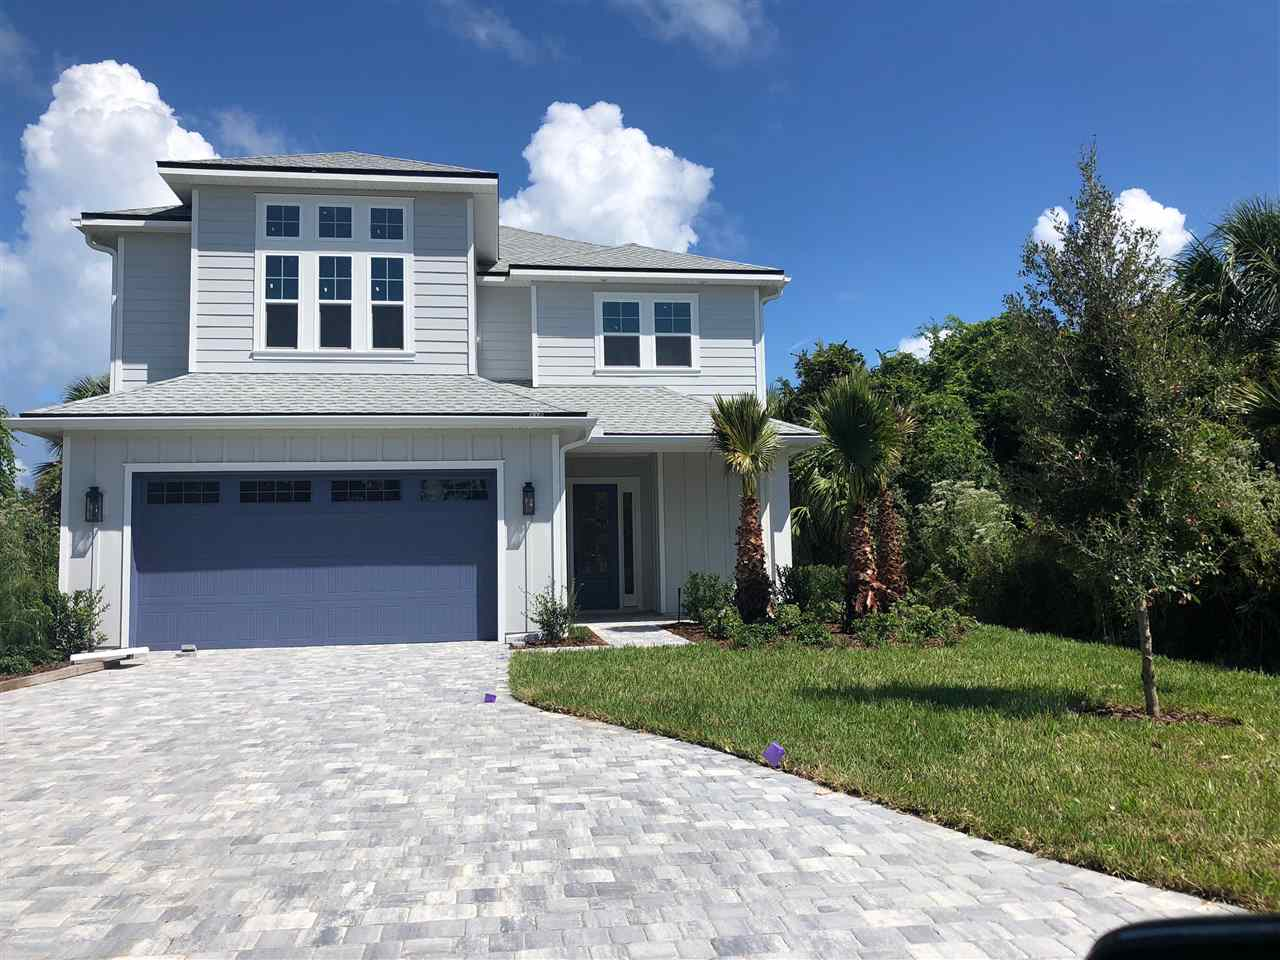 110 8TH ST, ST AUGUSTINE BEACH, FL 32080